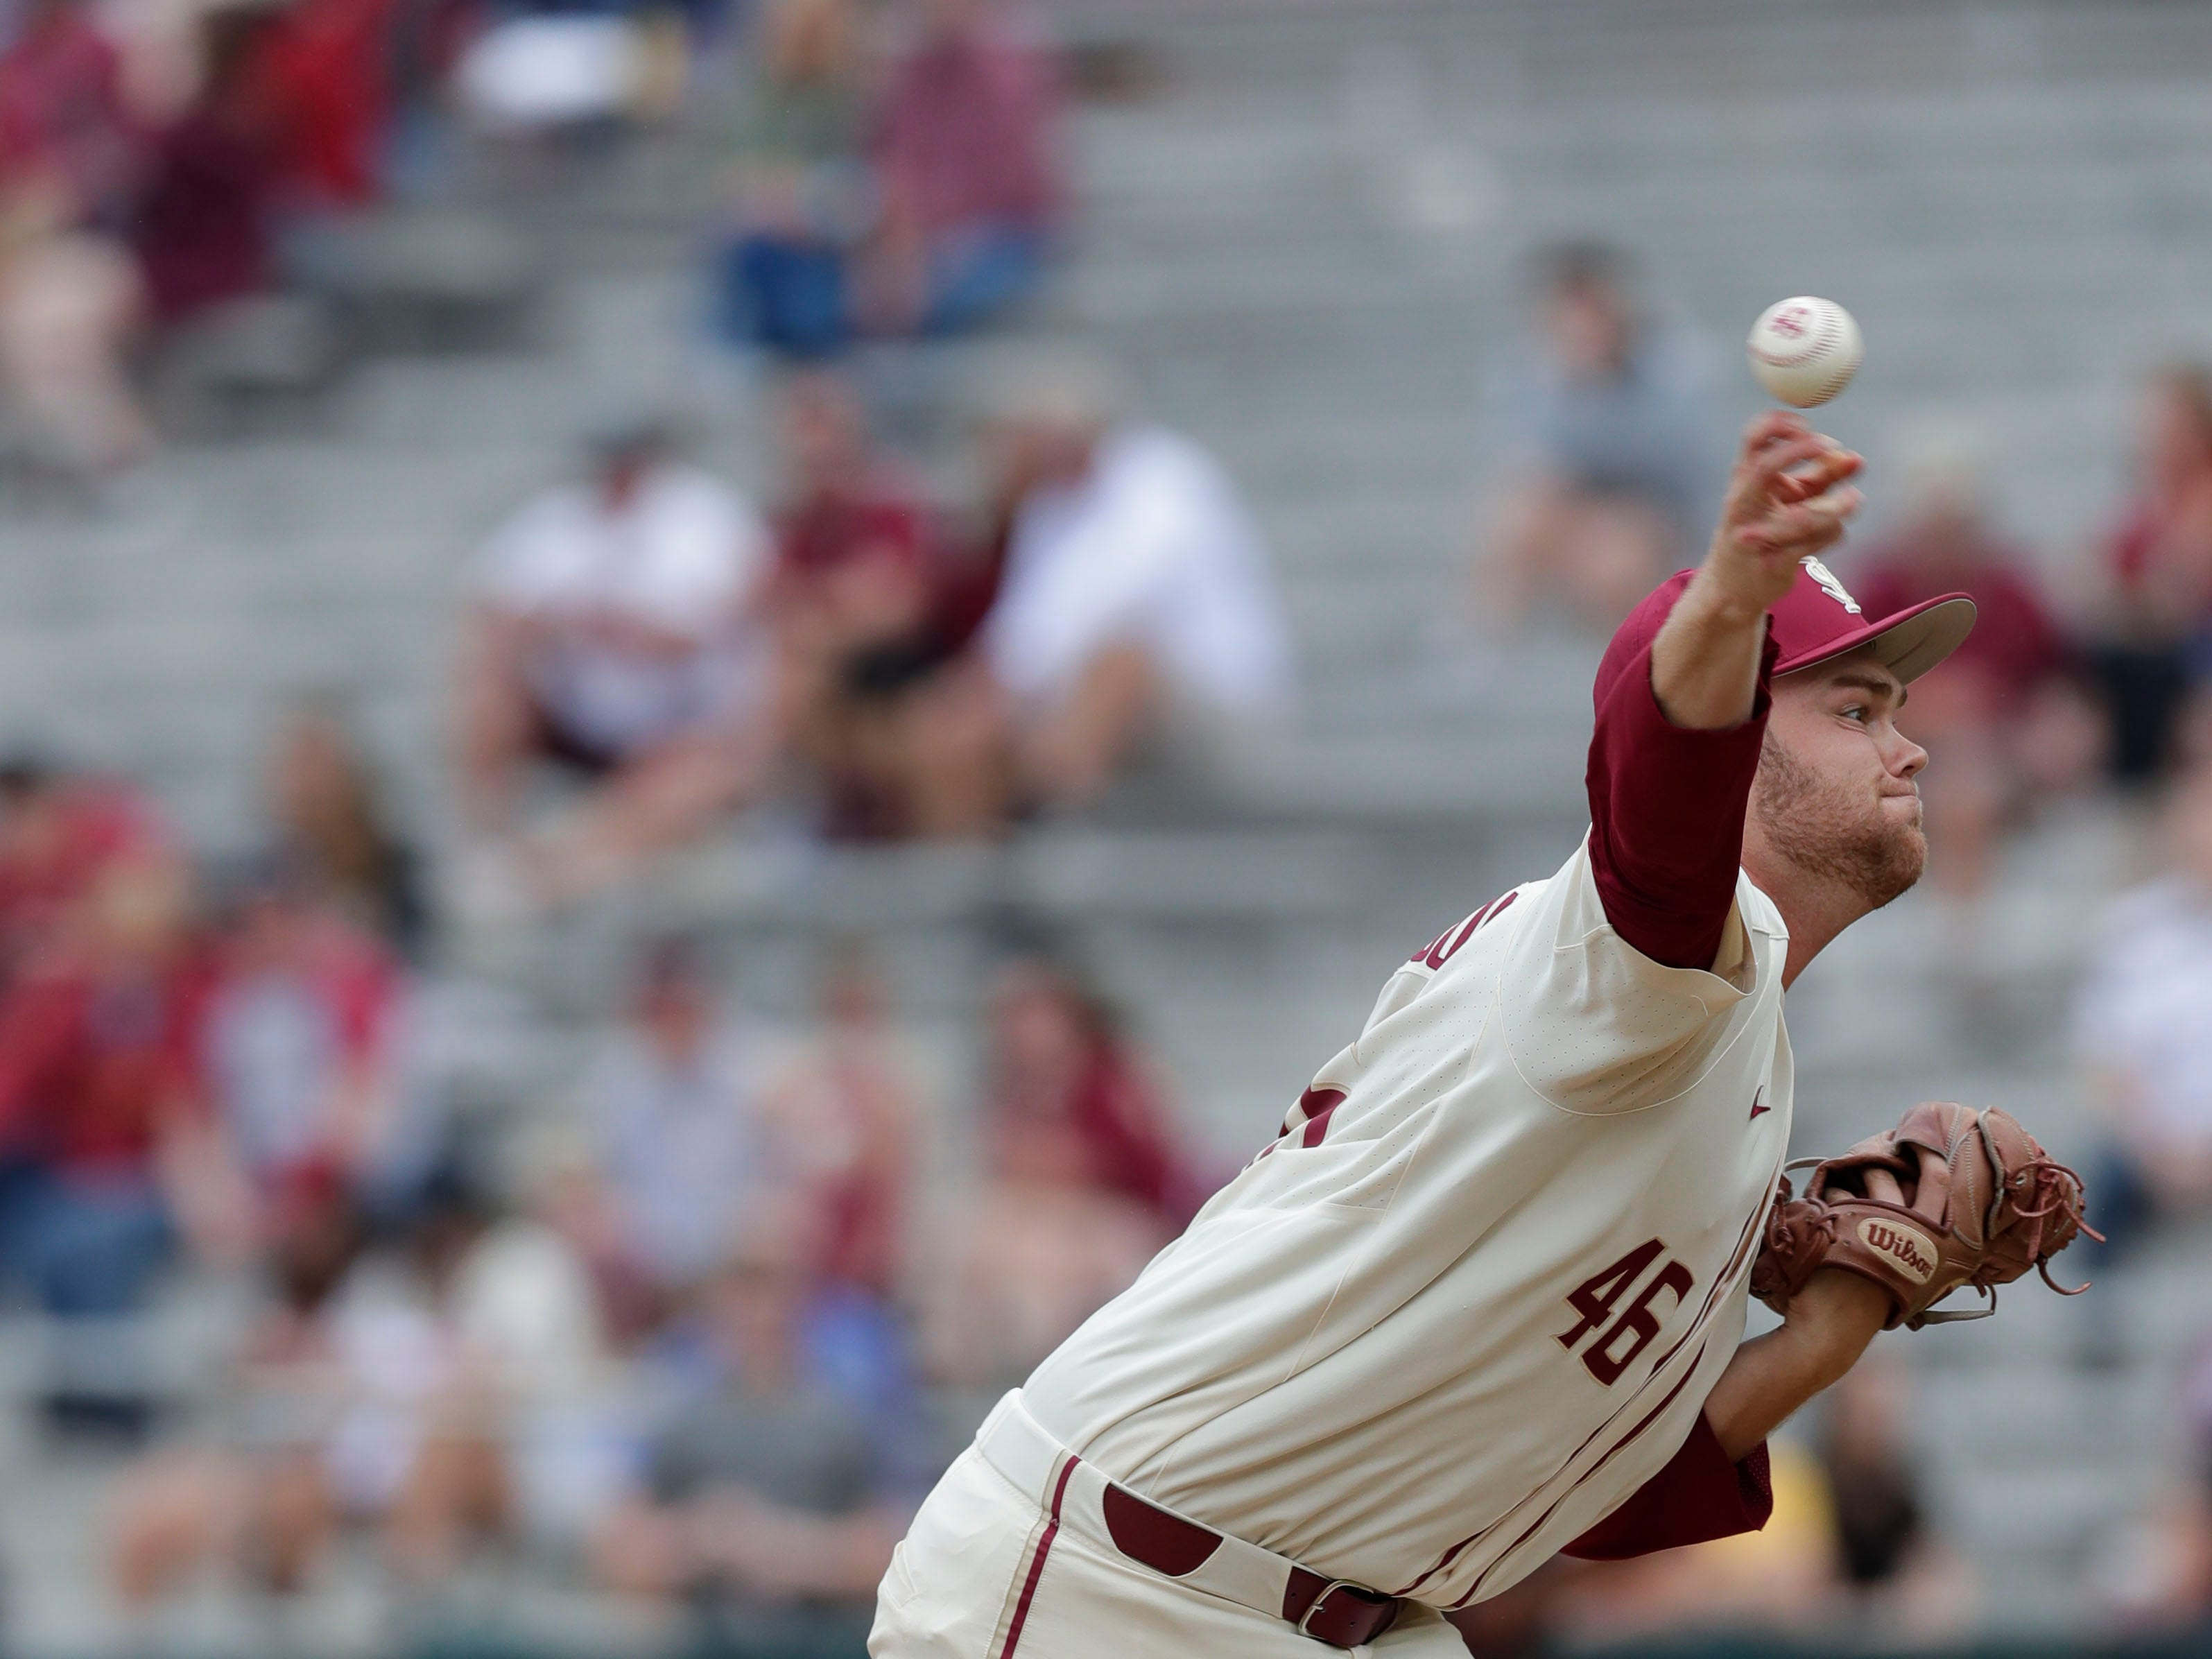 Florida State Seminoles right handed pitcher Gage Hutchinson (46) pitches as the Florida State Seminoles host the Maine Black Bears for the second game of the series, Saturday Feb. 16, 2019.